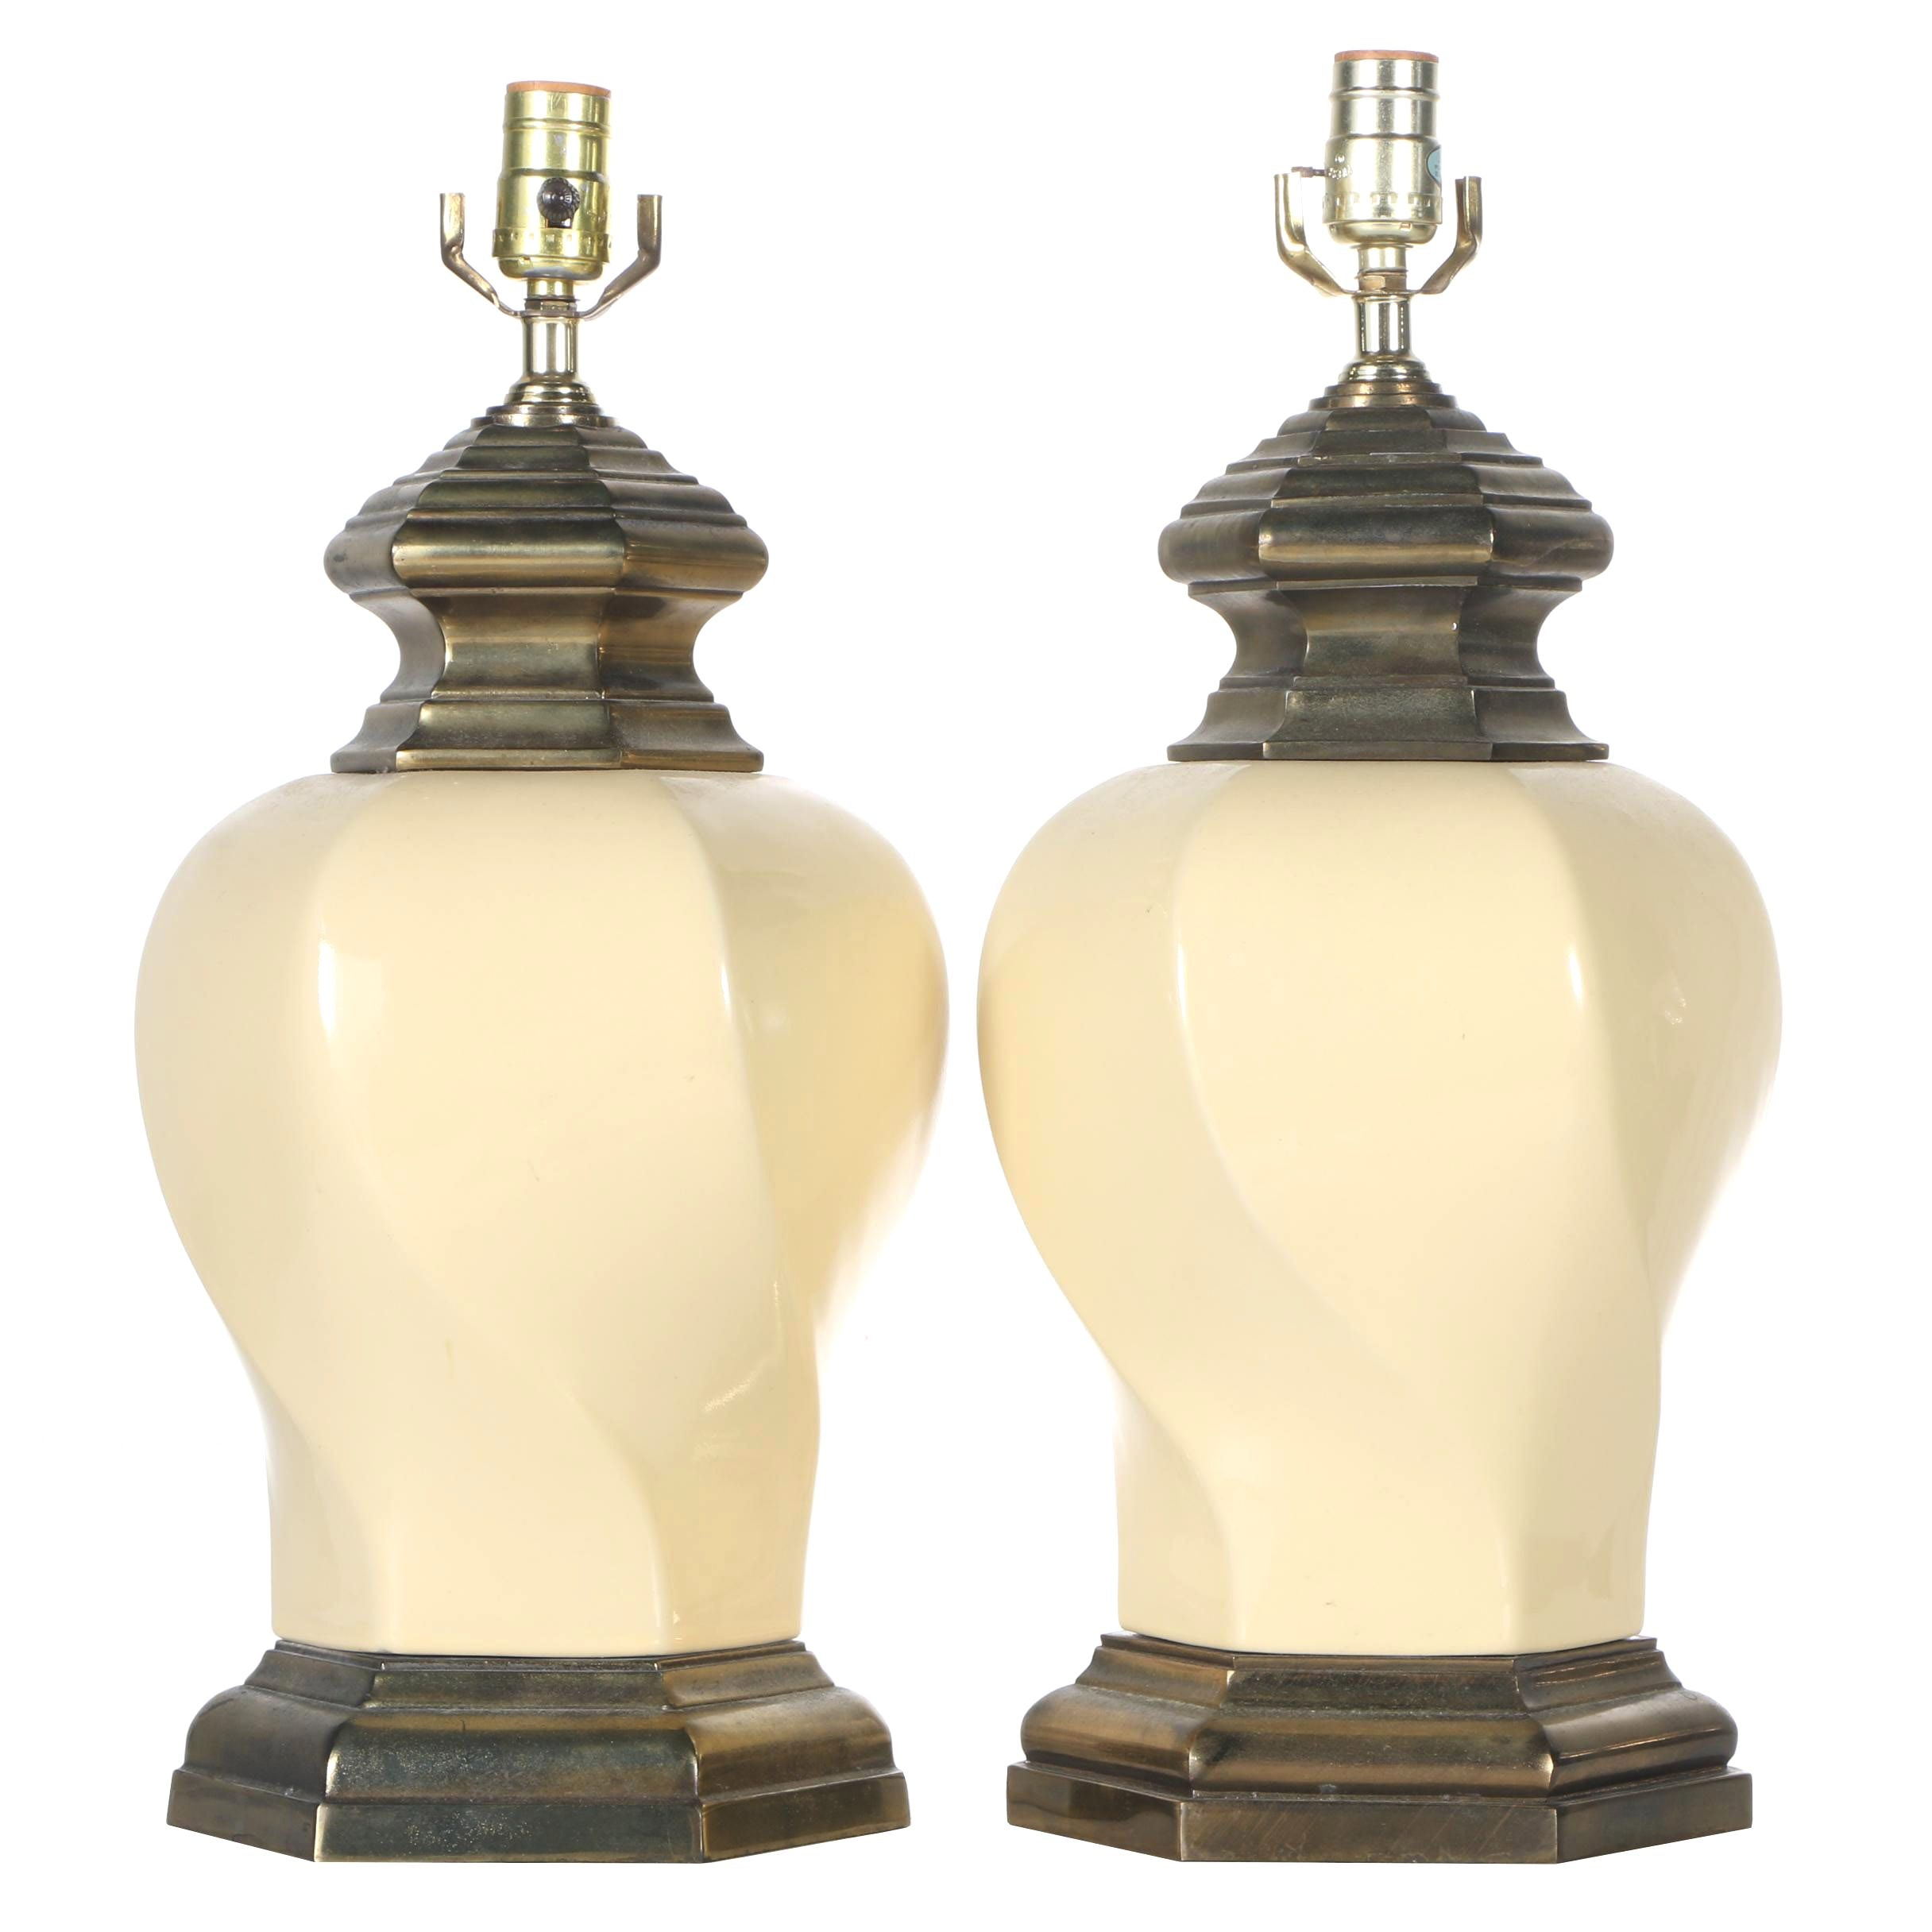 Cream and Gold Colored Lamps